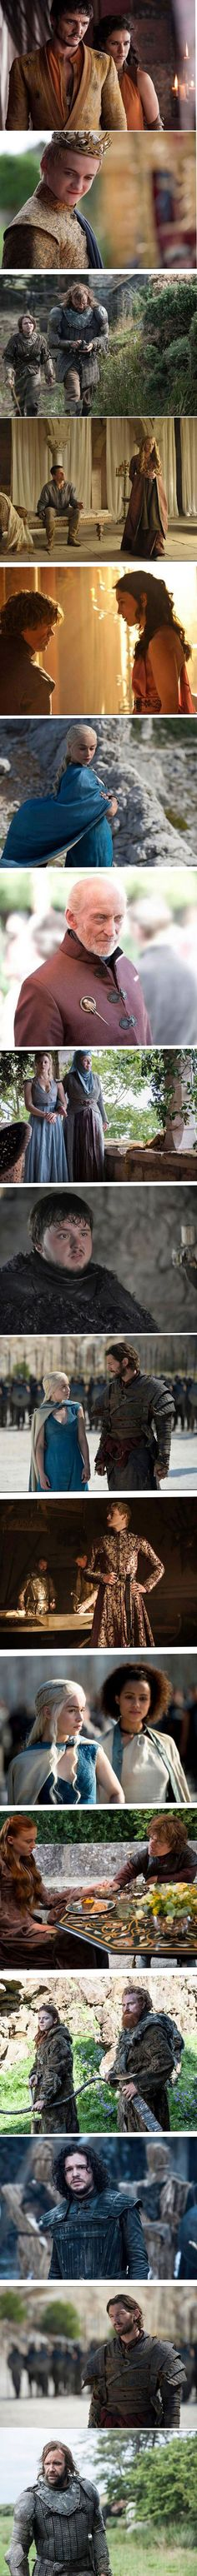 Games of Thrones Season 4 So, I don't watch this, but I want to work in the costuming department for it.